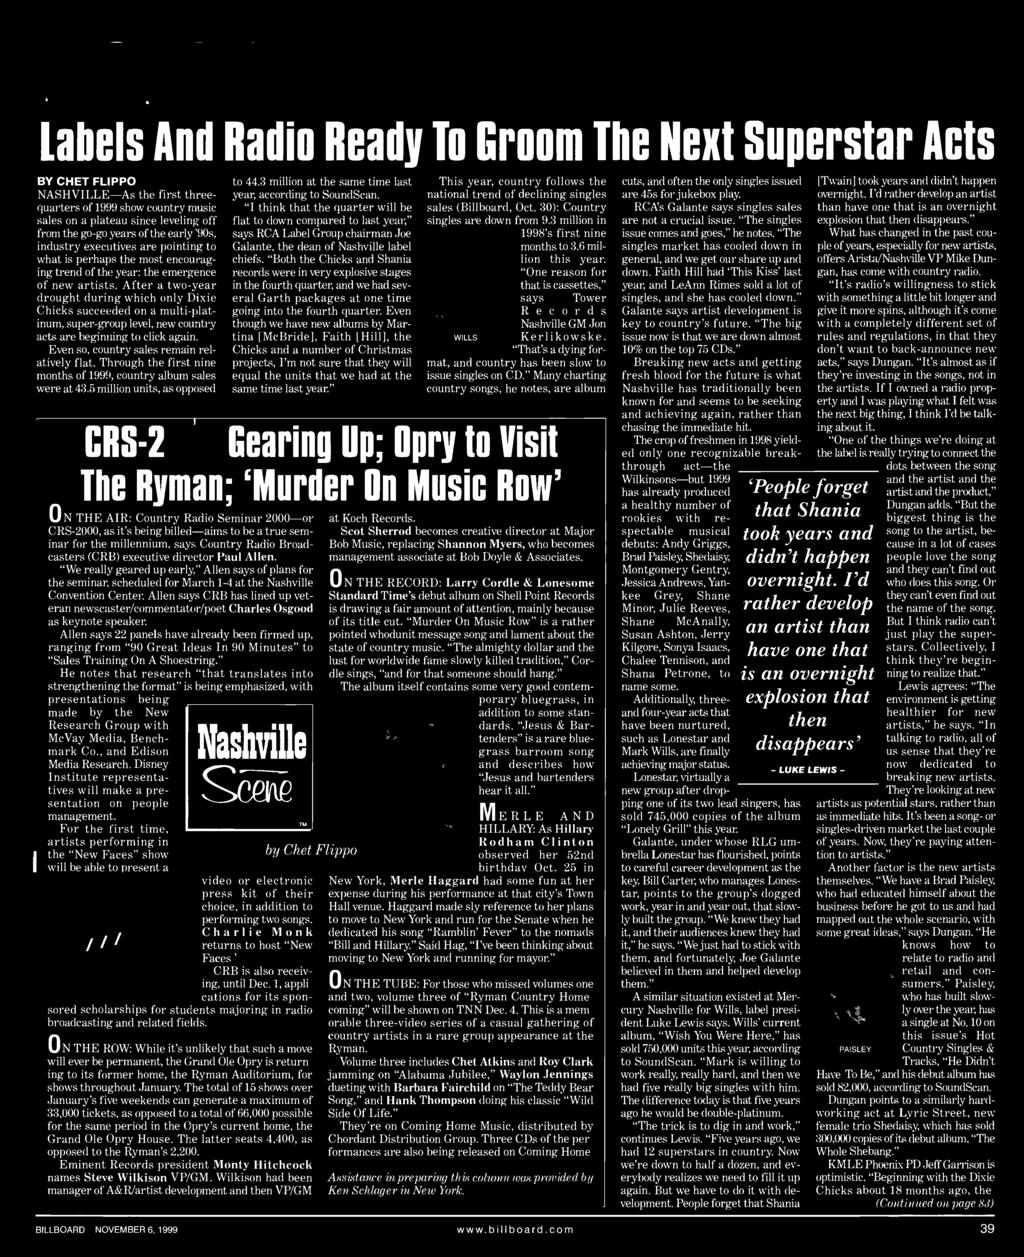 million units, as opposed O N THE AIR: Country Radio Seminar 2000 -or ('RS-2000, as it's being billed -aims to be a true seminar for the millennium, says Country Radio Broadcasters (CRB) executive